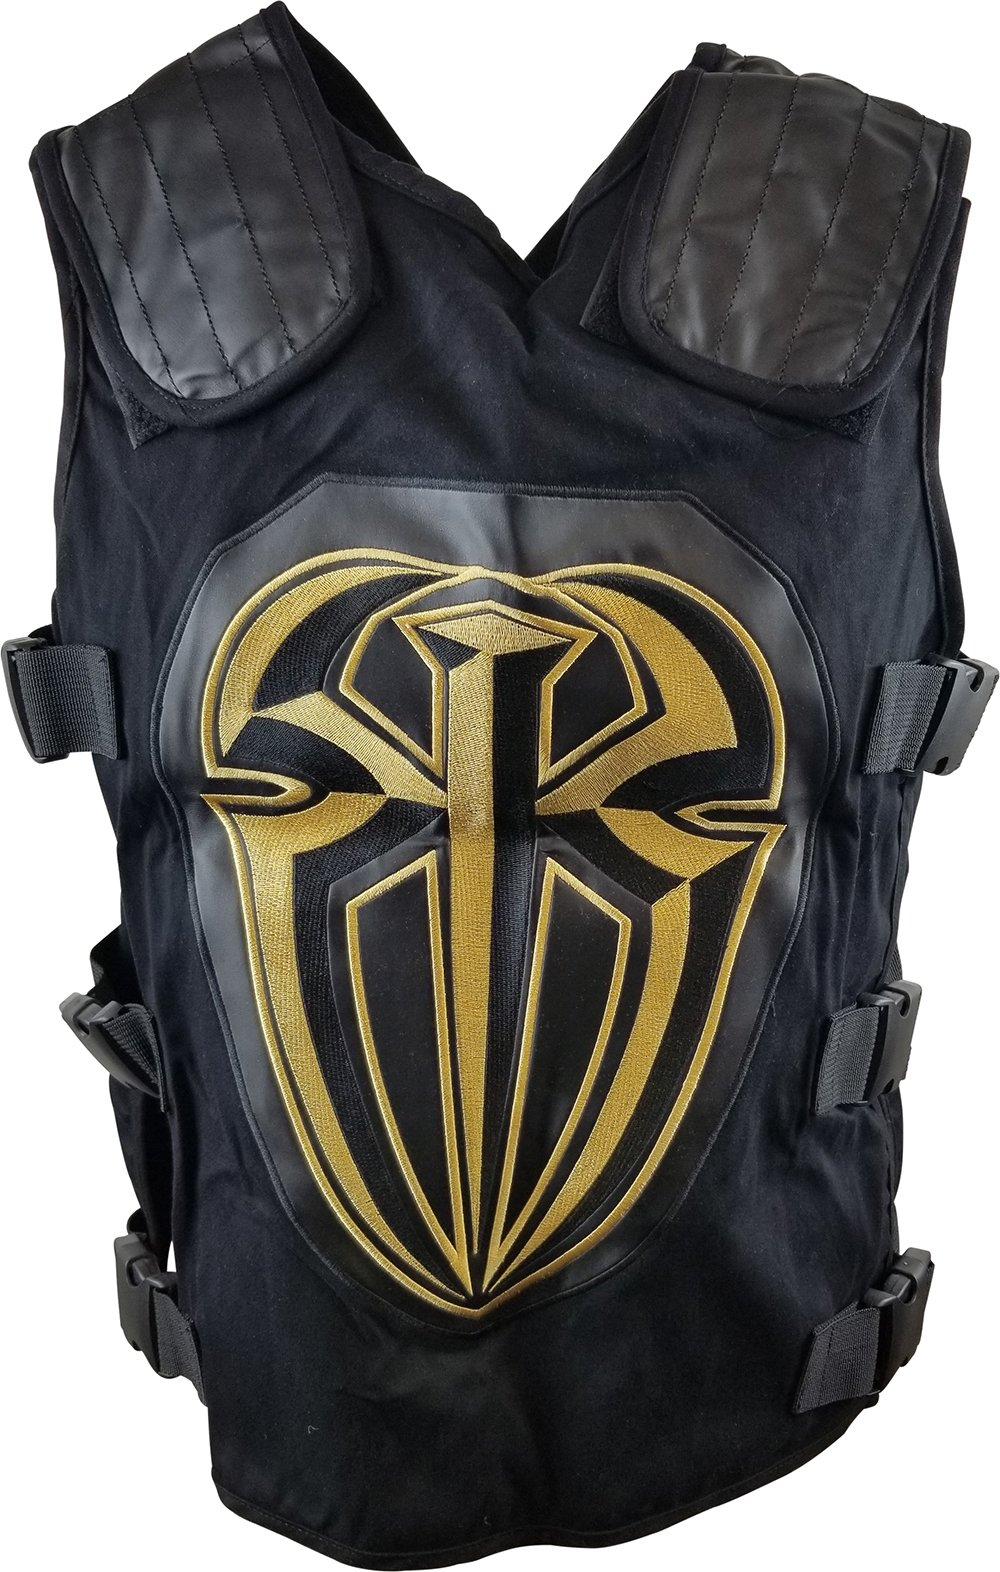 Roman Reigns Gold WWE Authentic Tactical Replica Vest by WWE Authentic